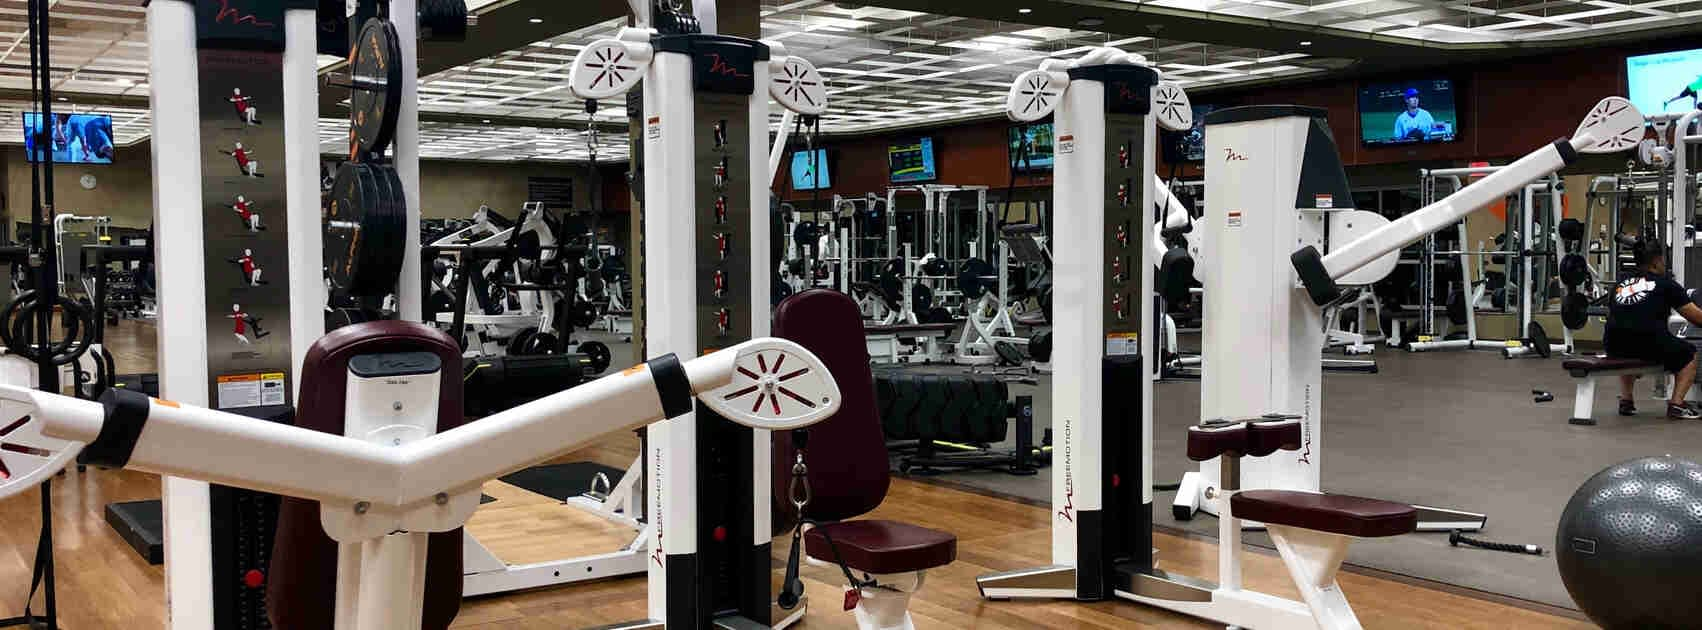 How to Interior Design Gyms and Clubs